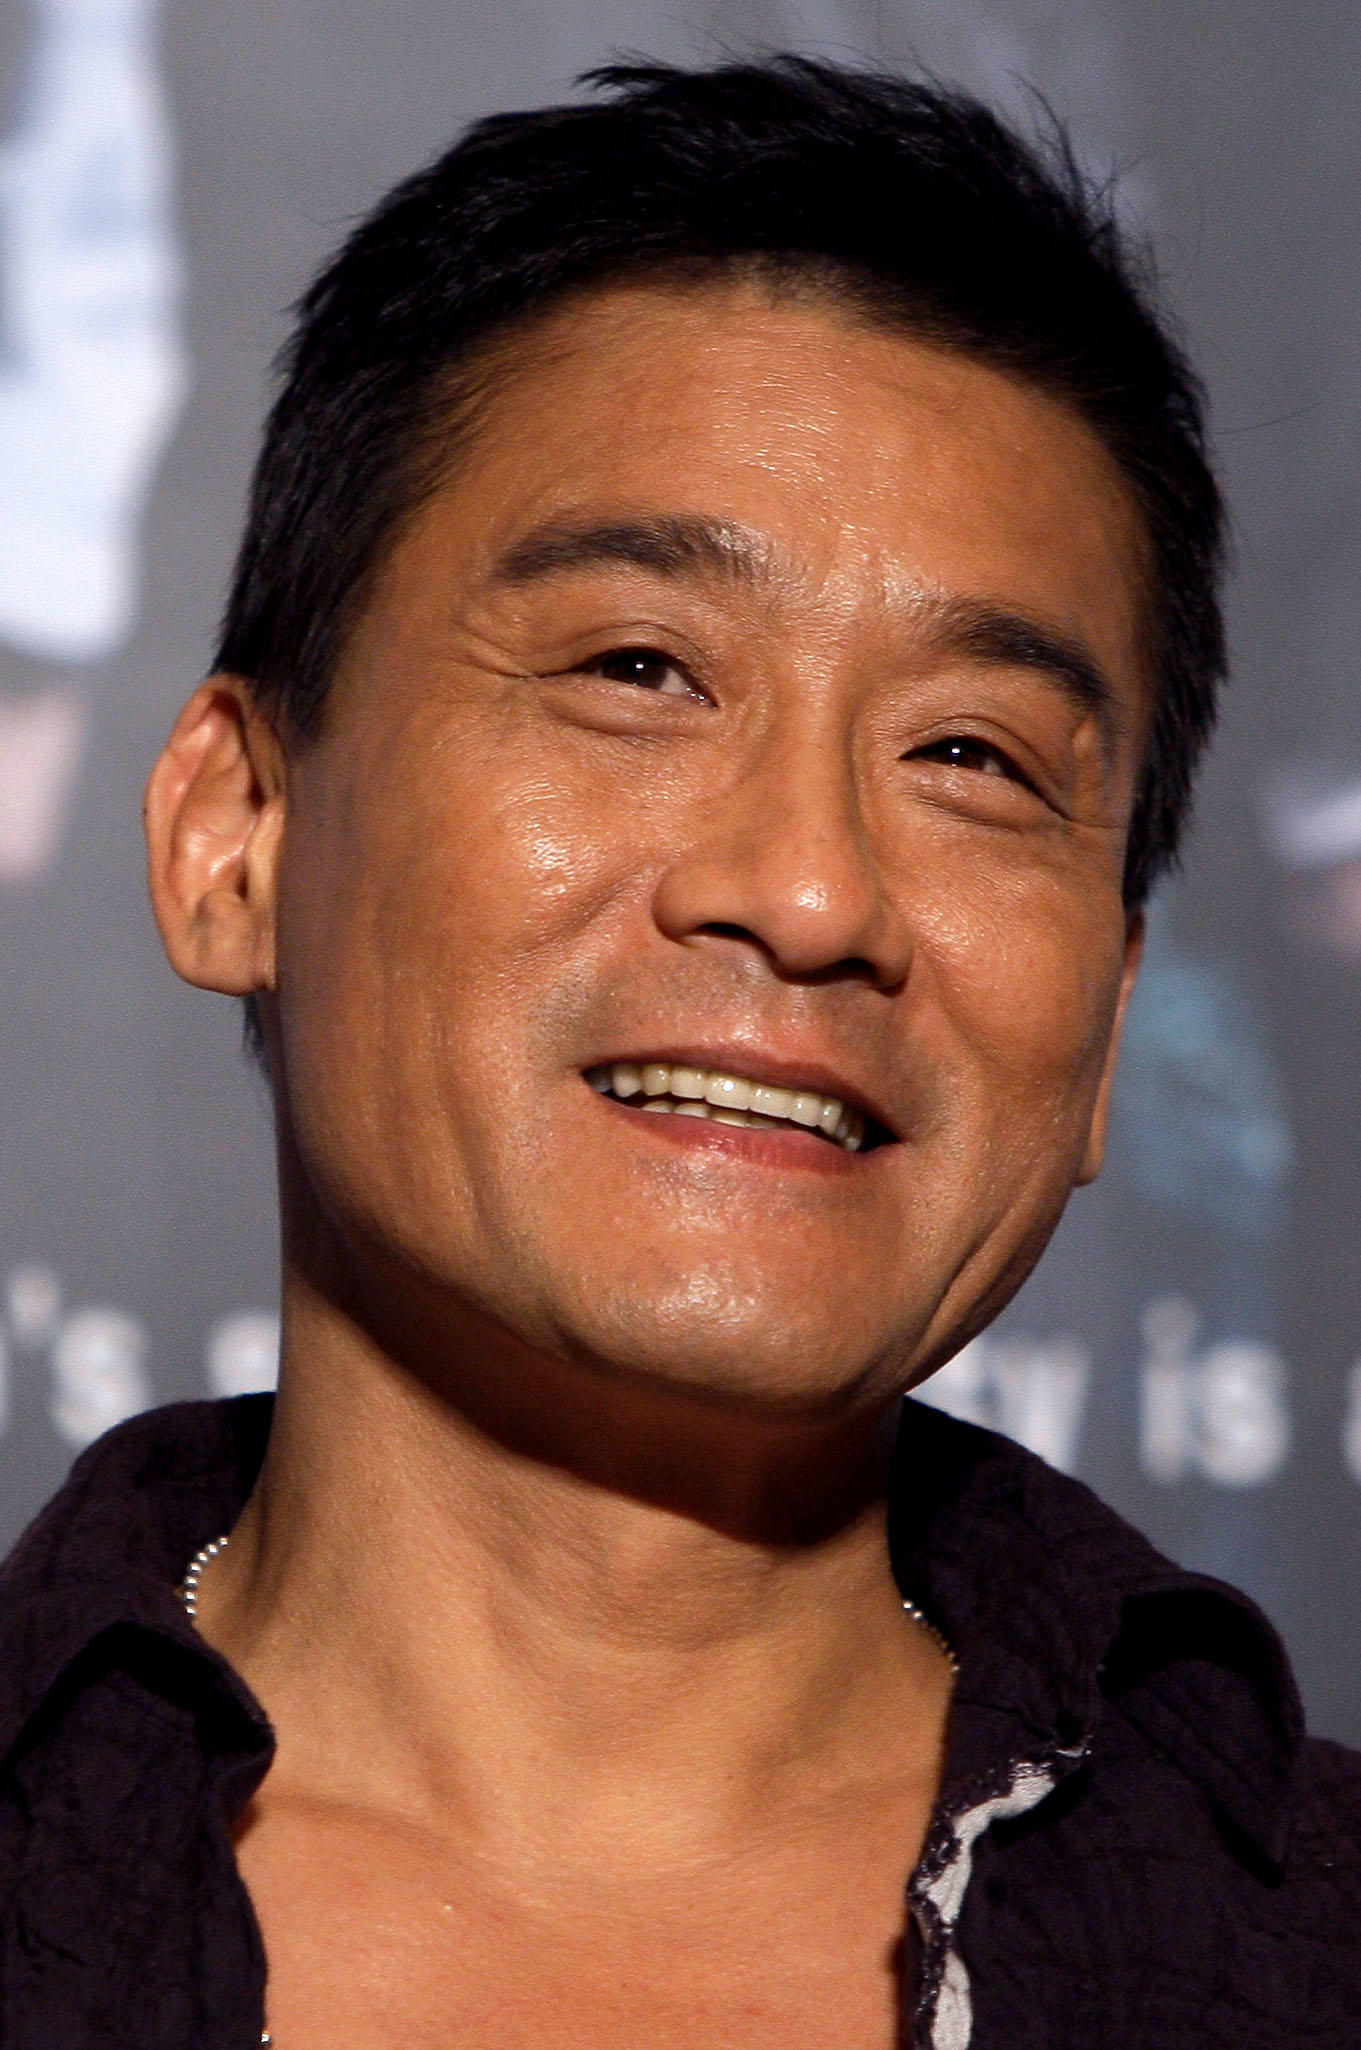 Tony Leung Ka-Fai at the press conference for